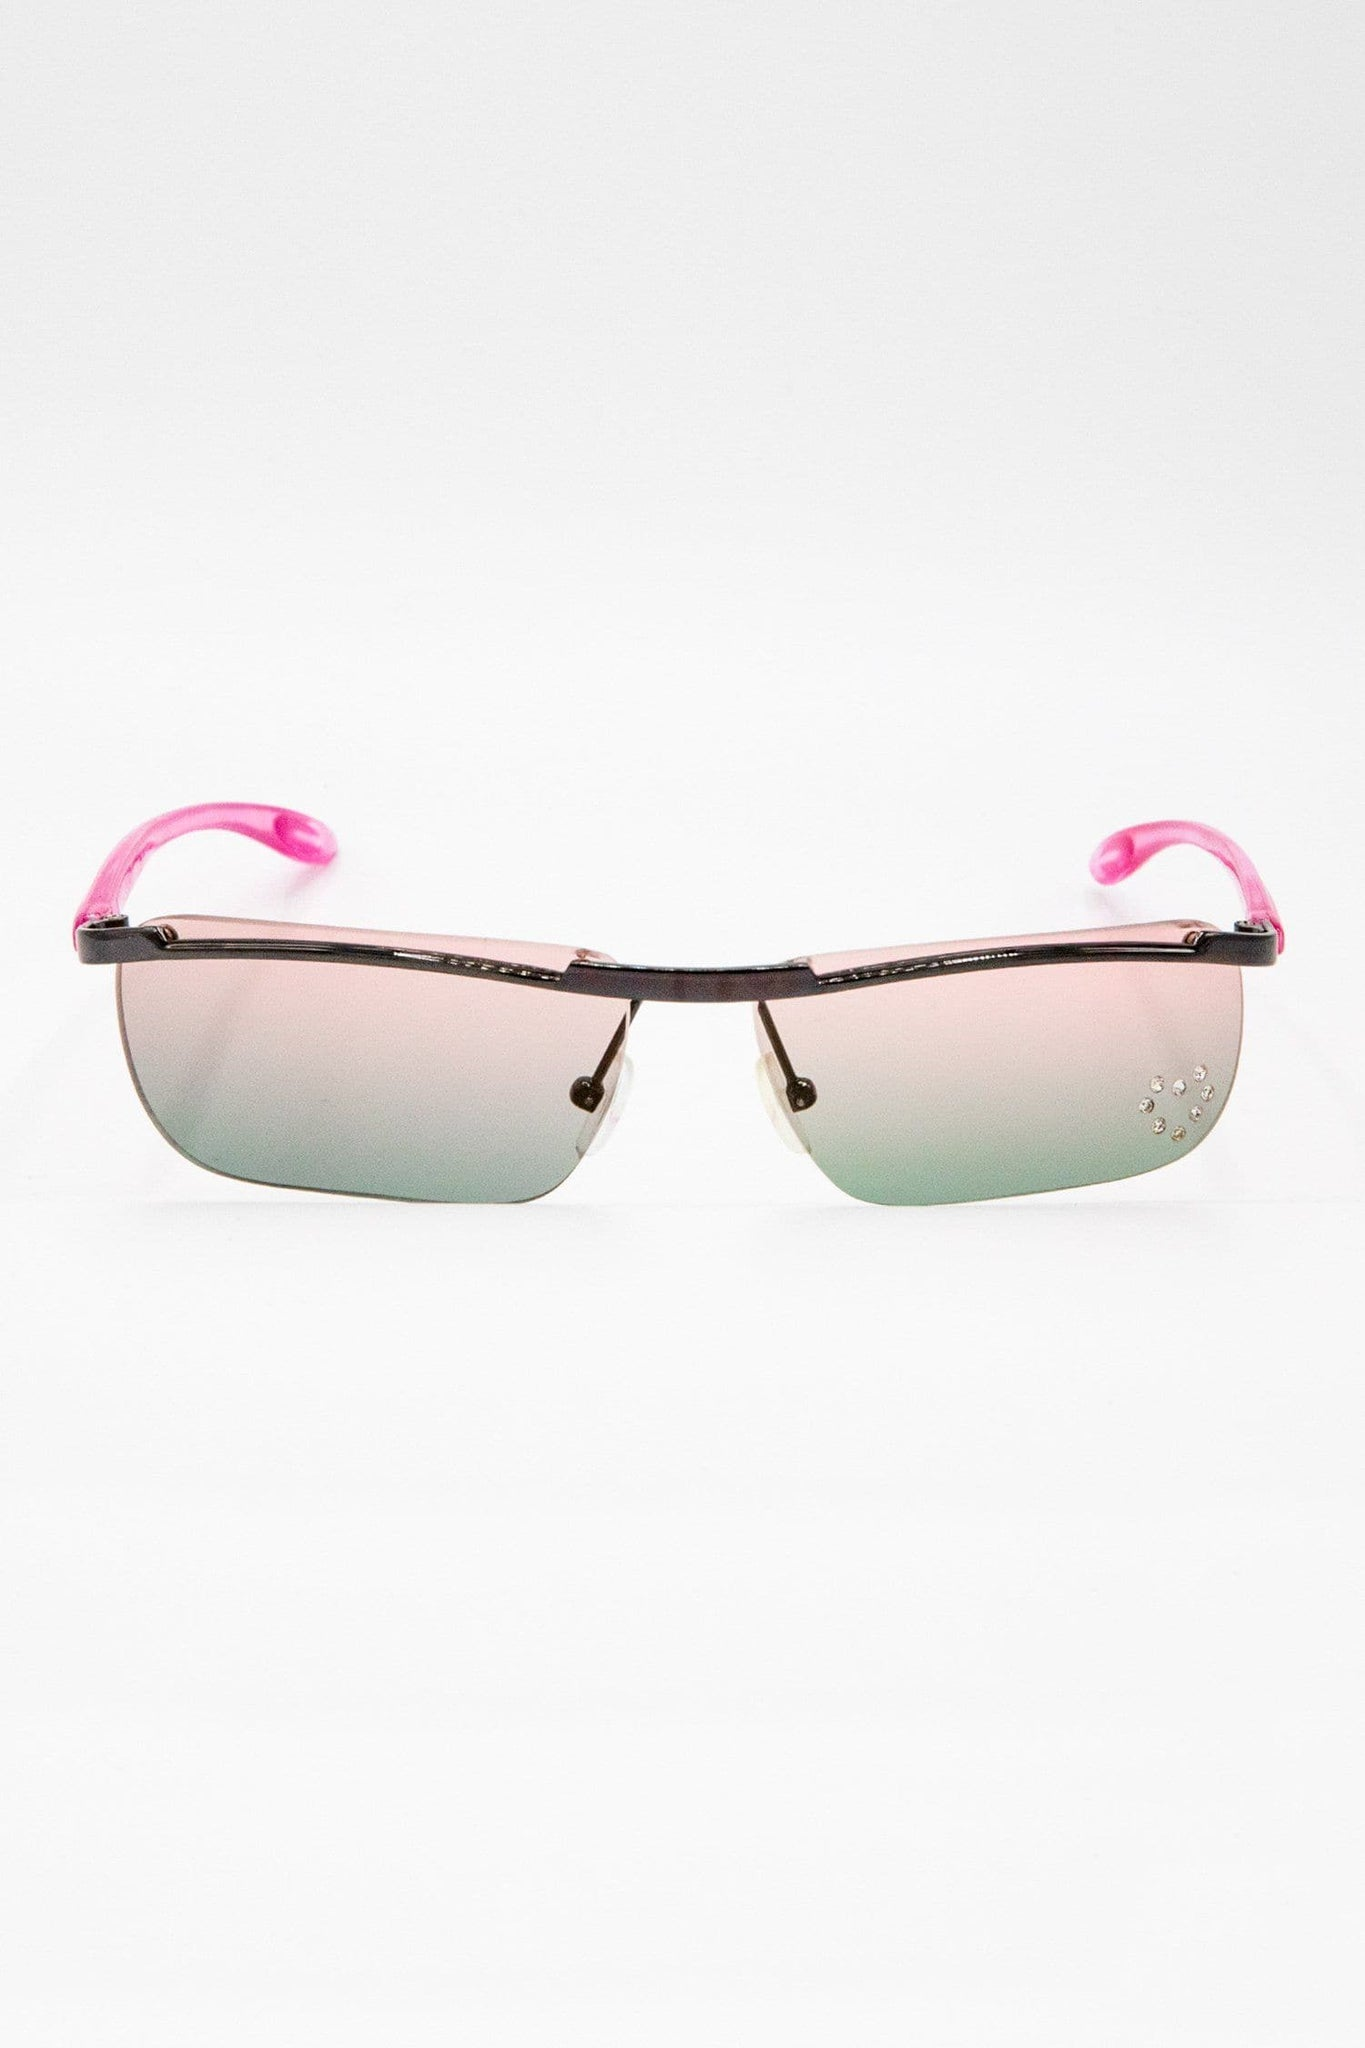 SGCARMEN - Carmen Ombre Heart Decal Sunglasses